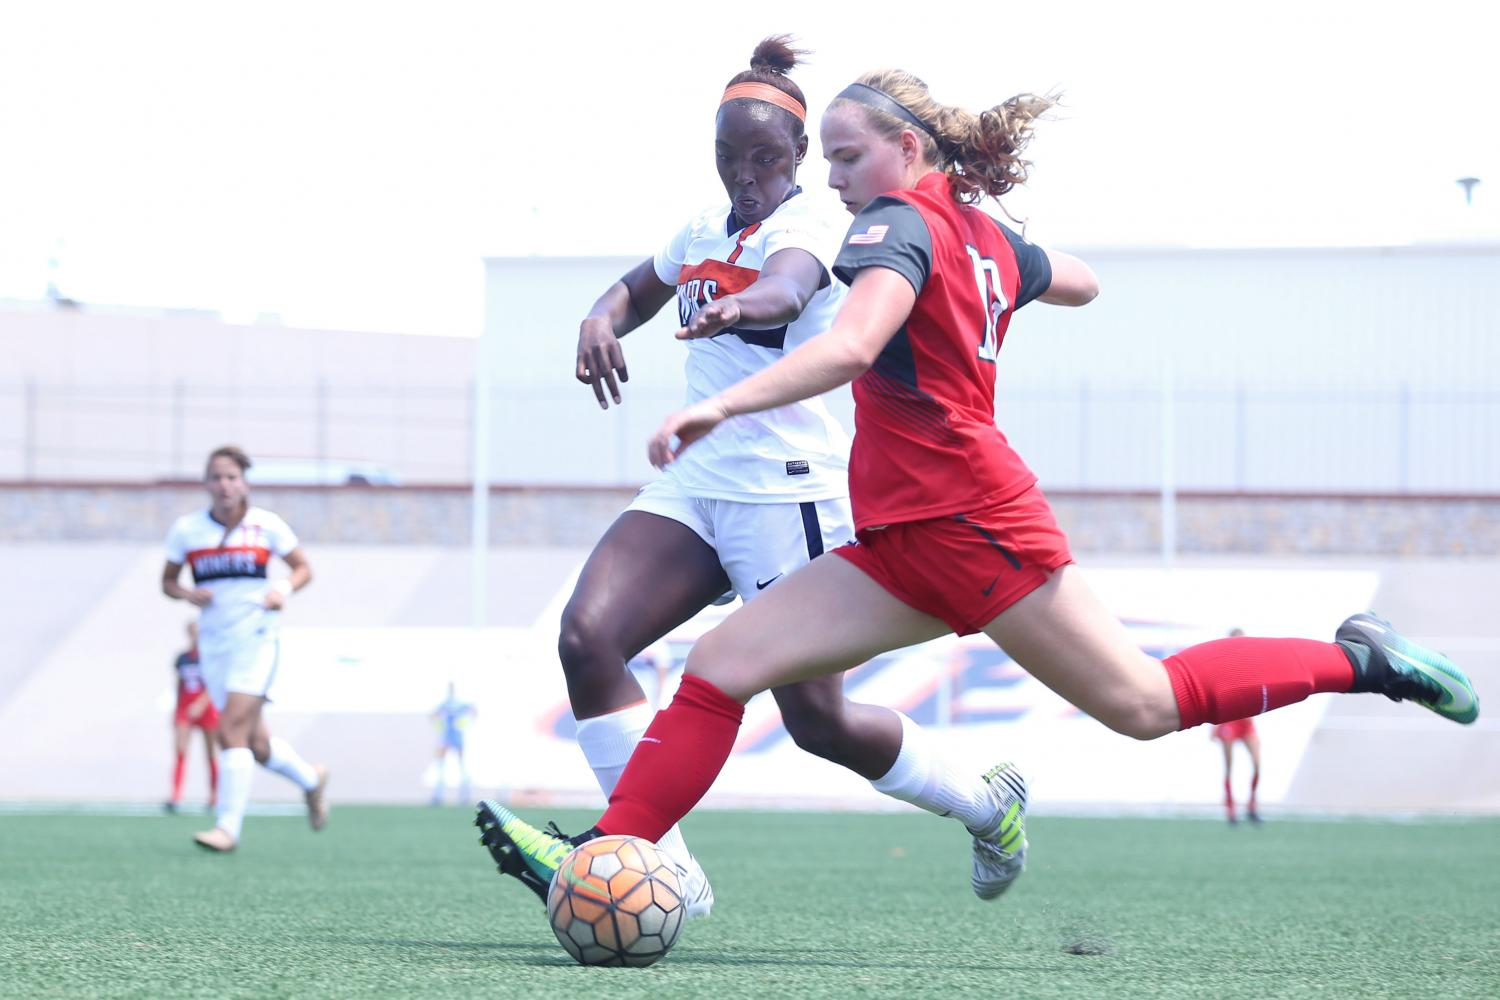 UTEP women's soccer falls to Arizona in exhibition game